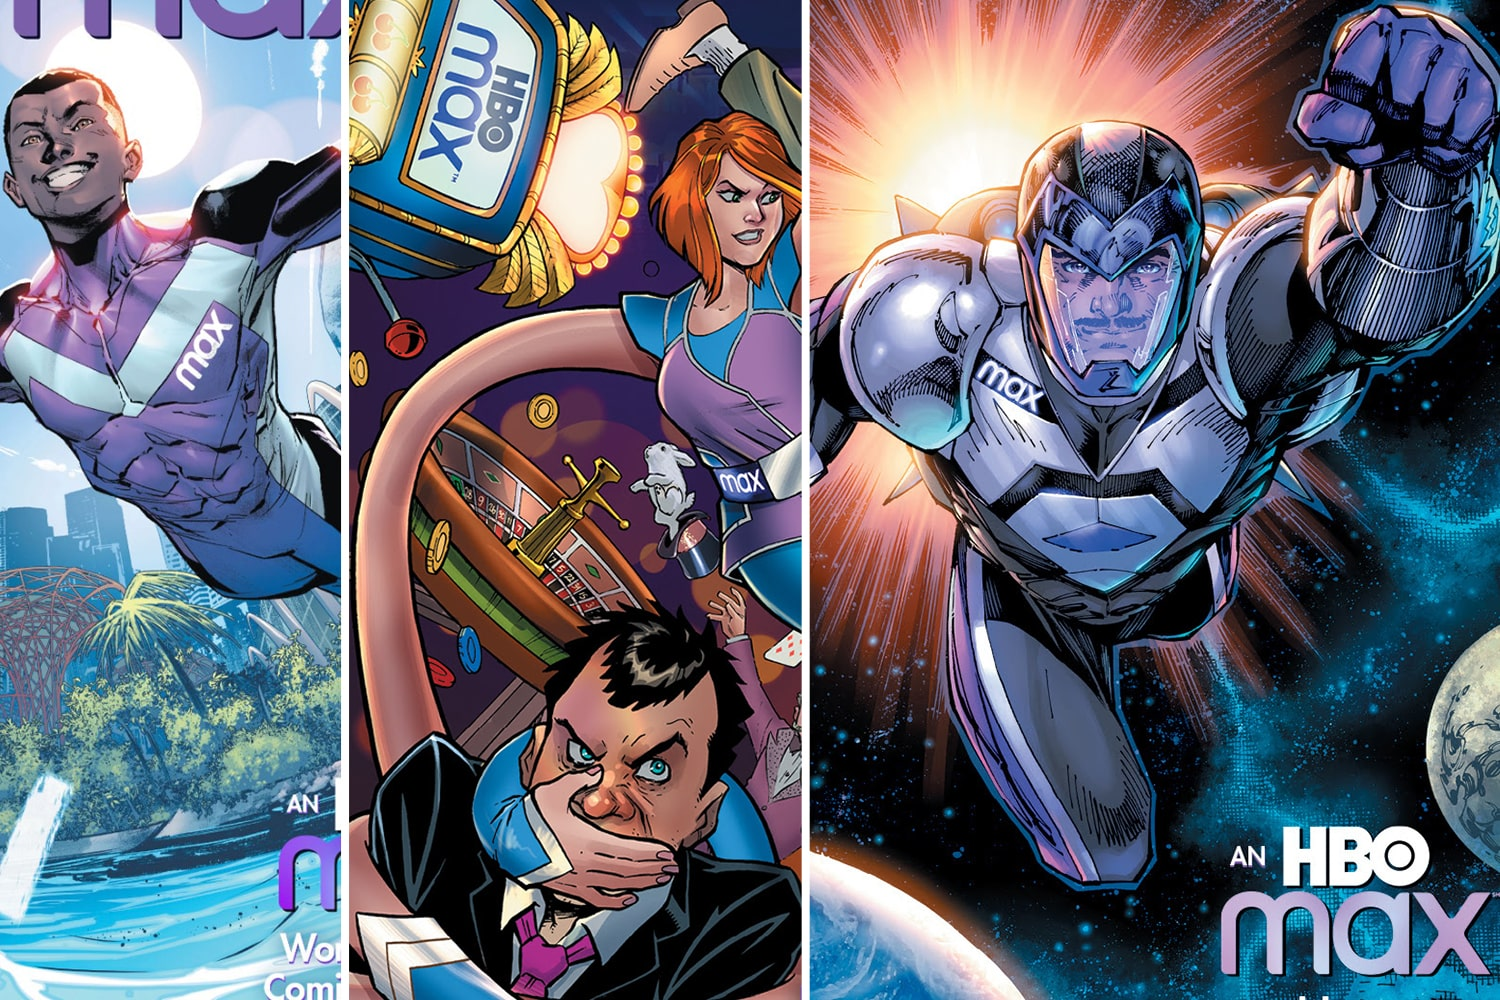 "It was bound to happen, but I never thought so soon, as DC Comics and HBO Max are collaborating on a new digital comic book series. Titled To The Max, the stories featured in the comic will be about ""ordinary people achieving their maximum potential when they transform into extraordinary superheroes with the help of another new character, Max the dog."" The comics celebrate the launch of HBO Max and likely are the first of more collaborations between the Warner Bros. companies."